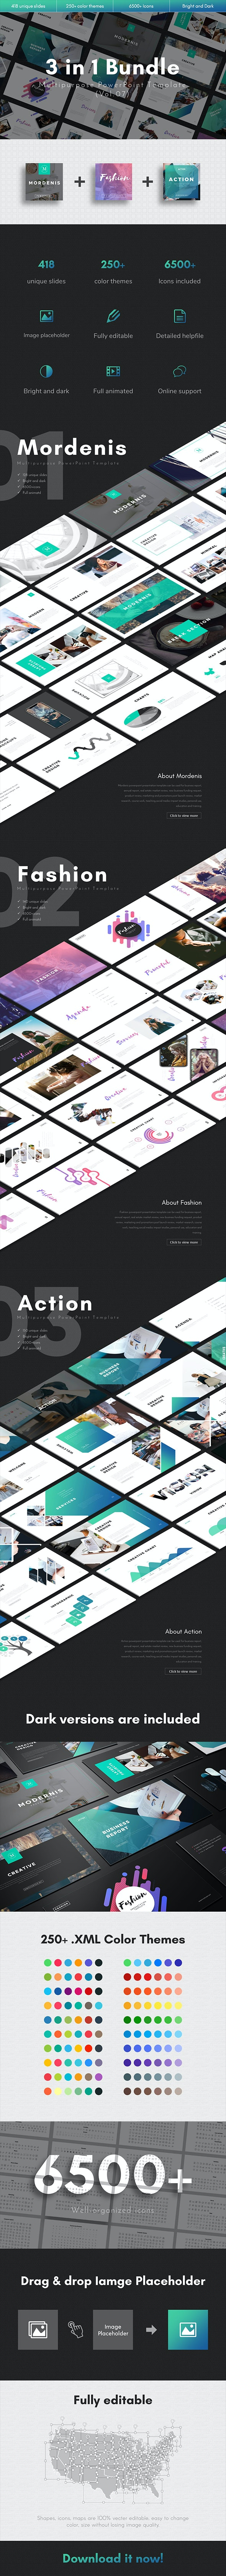 3 in 1 Multipurpose PowerPoint Template Bundle (Vol.07) - Business PowerPoint Templates